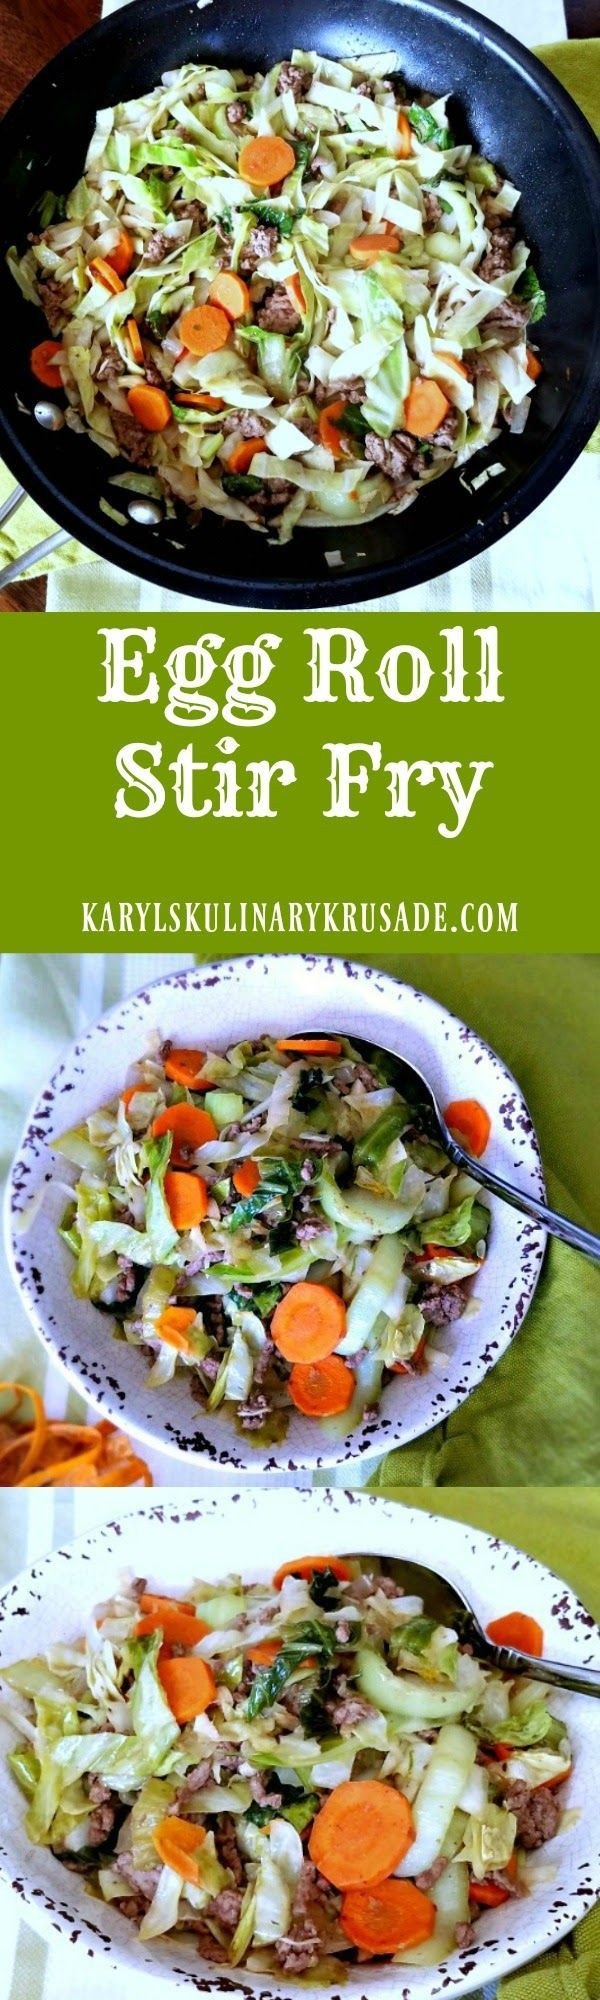 Love egg rolls, but not the fat and calories? This Egg Roll Stir Fry has all the goodness of an egg roll, but in much lighter, yet filling, dish.